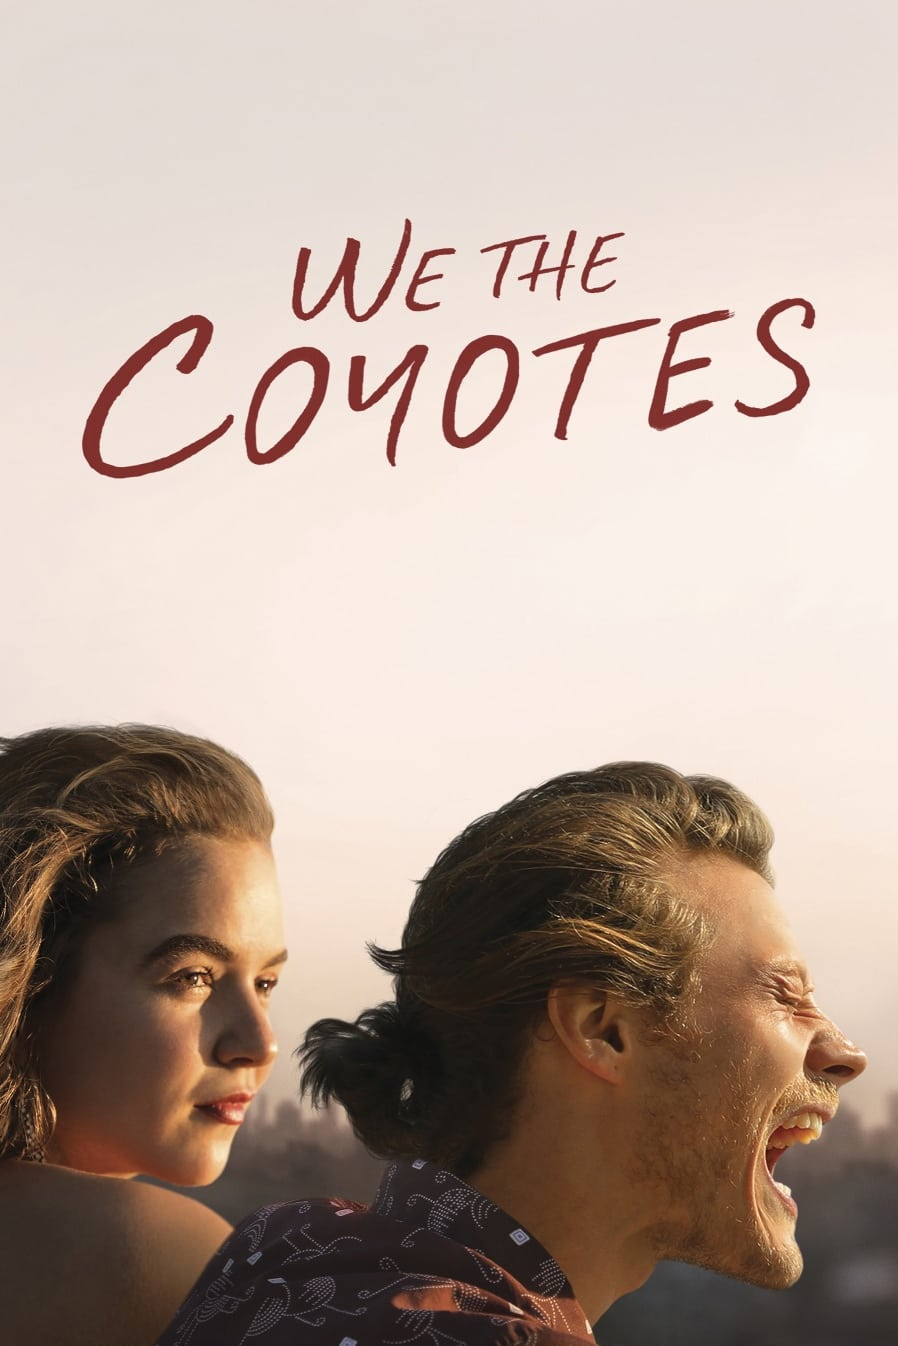 We the Coyotes